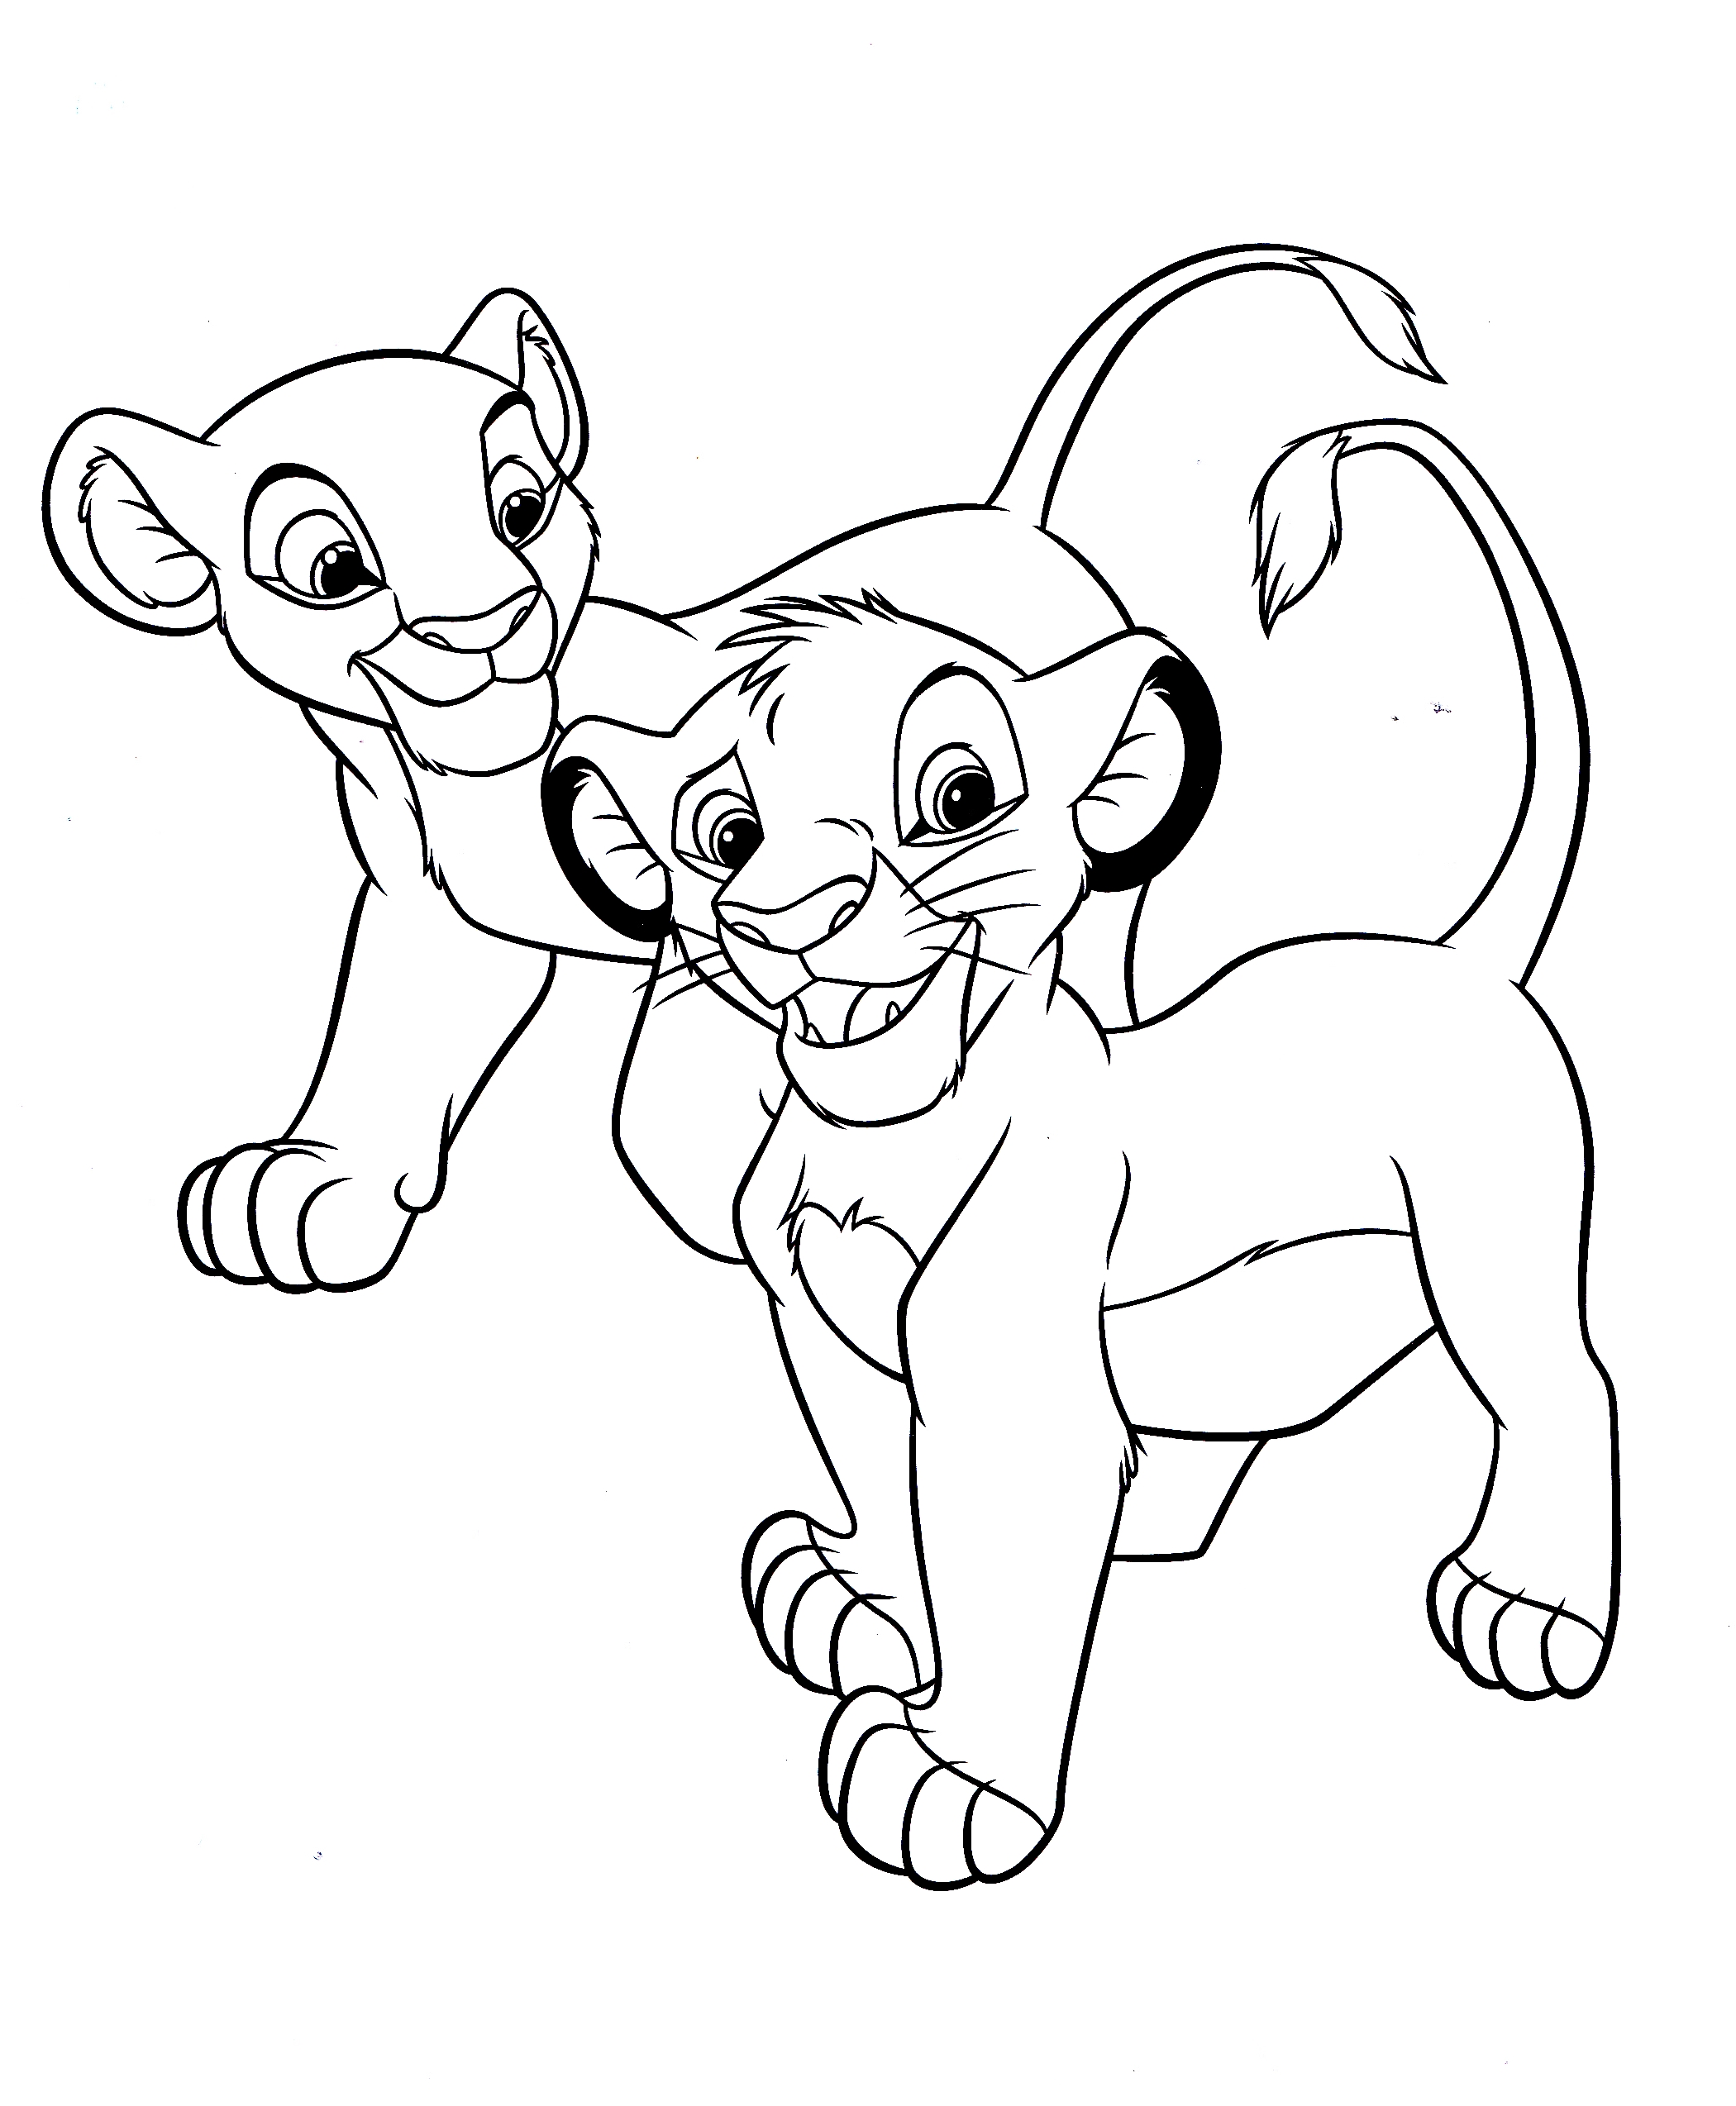 Walt Disney Coloring Pages - Nala & Simba